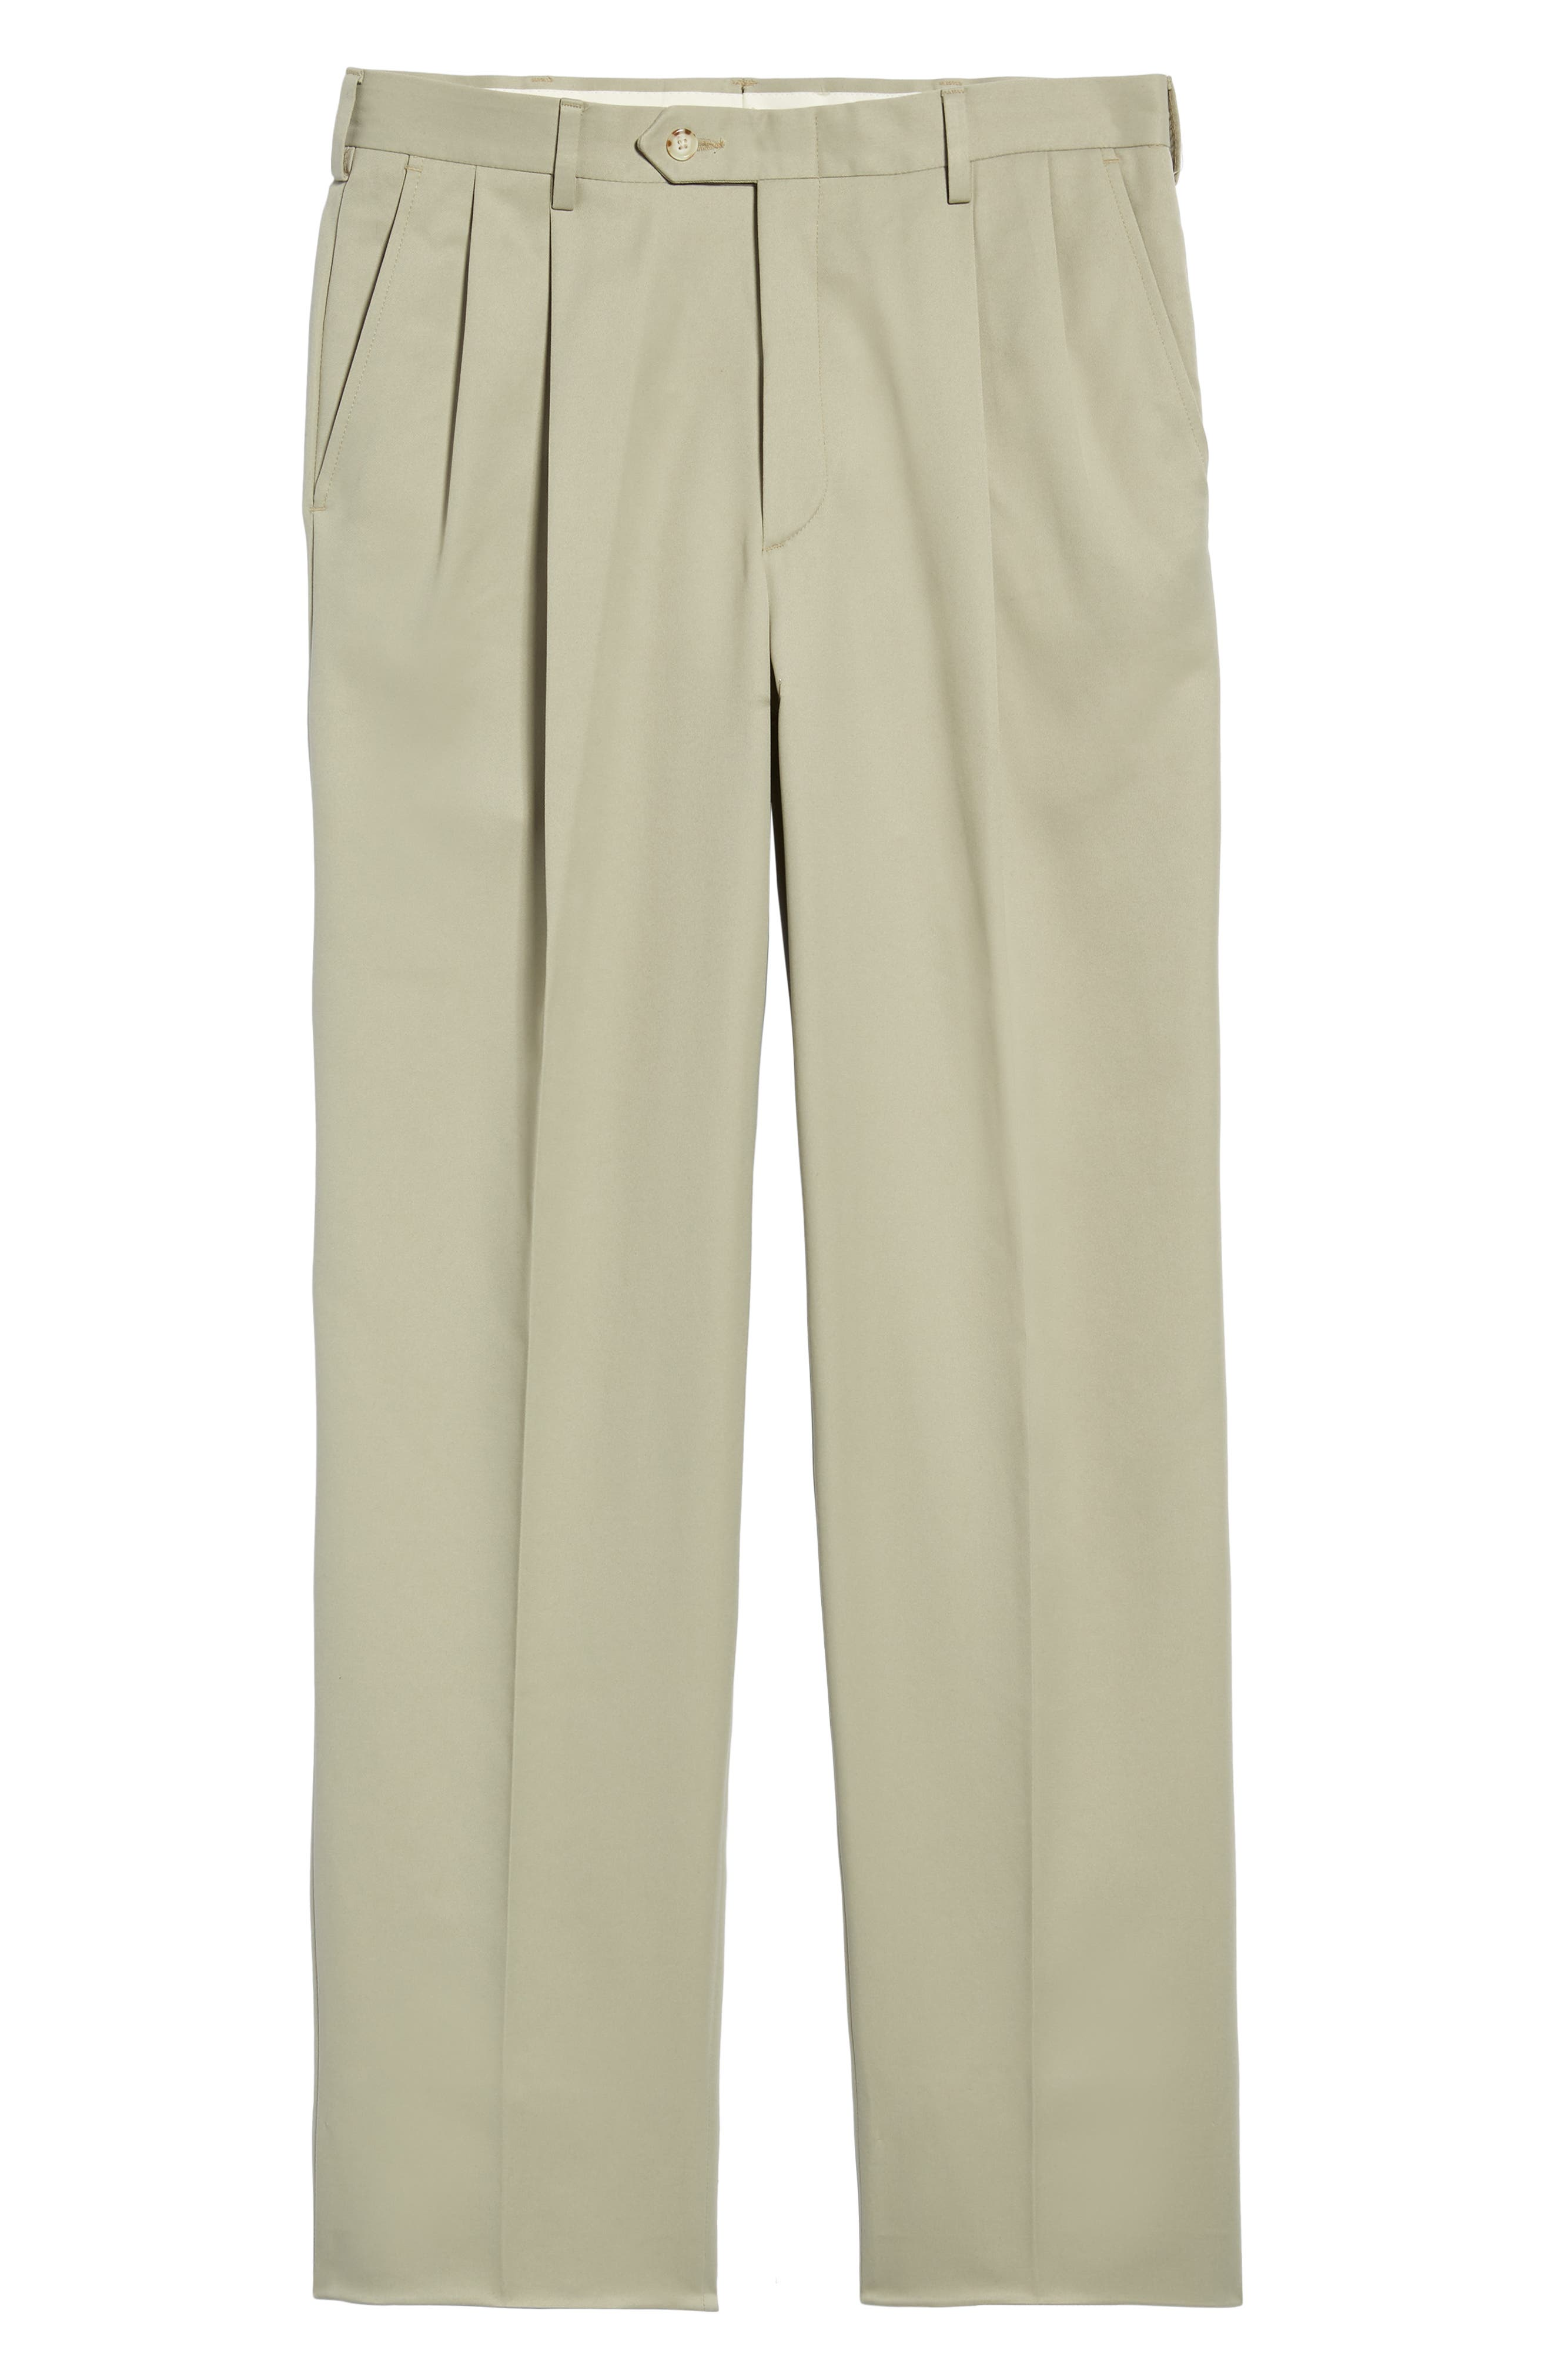 Classic Fit Pleated Microfiber Performance Trousers,                             Alternate thumbnail 6, color,                             TAUPE